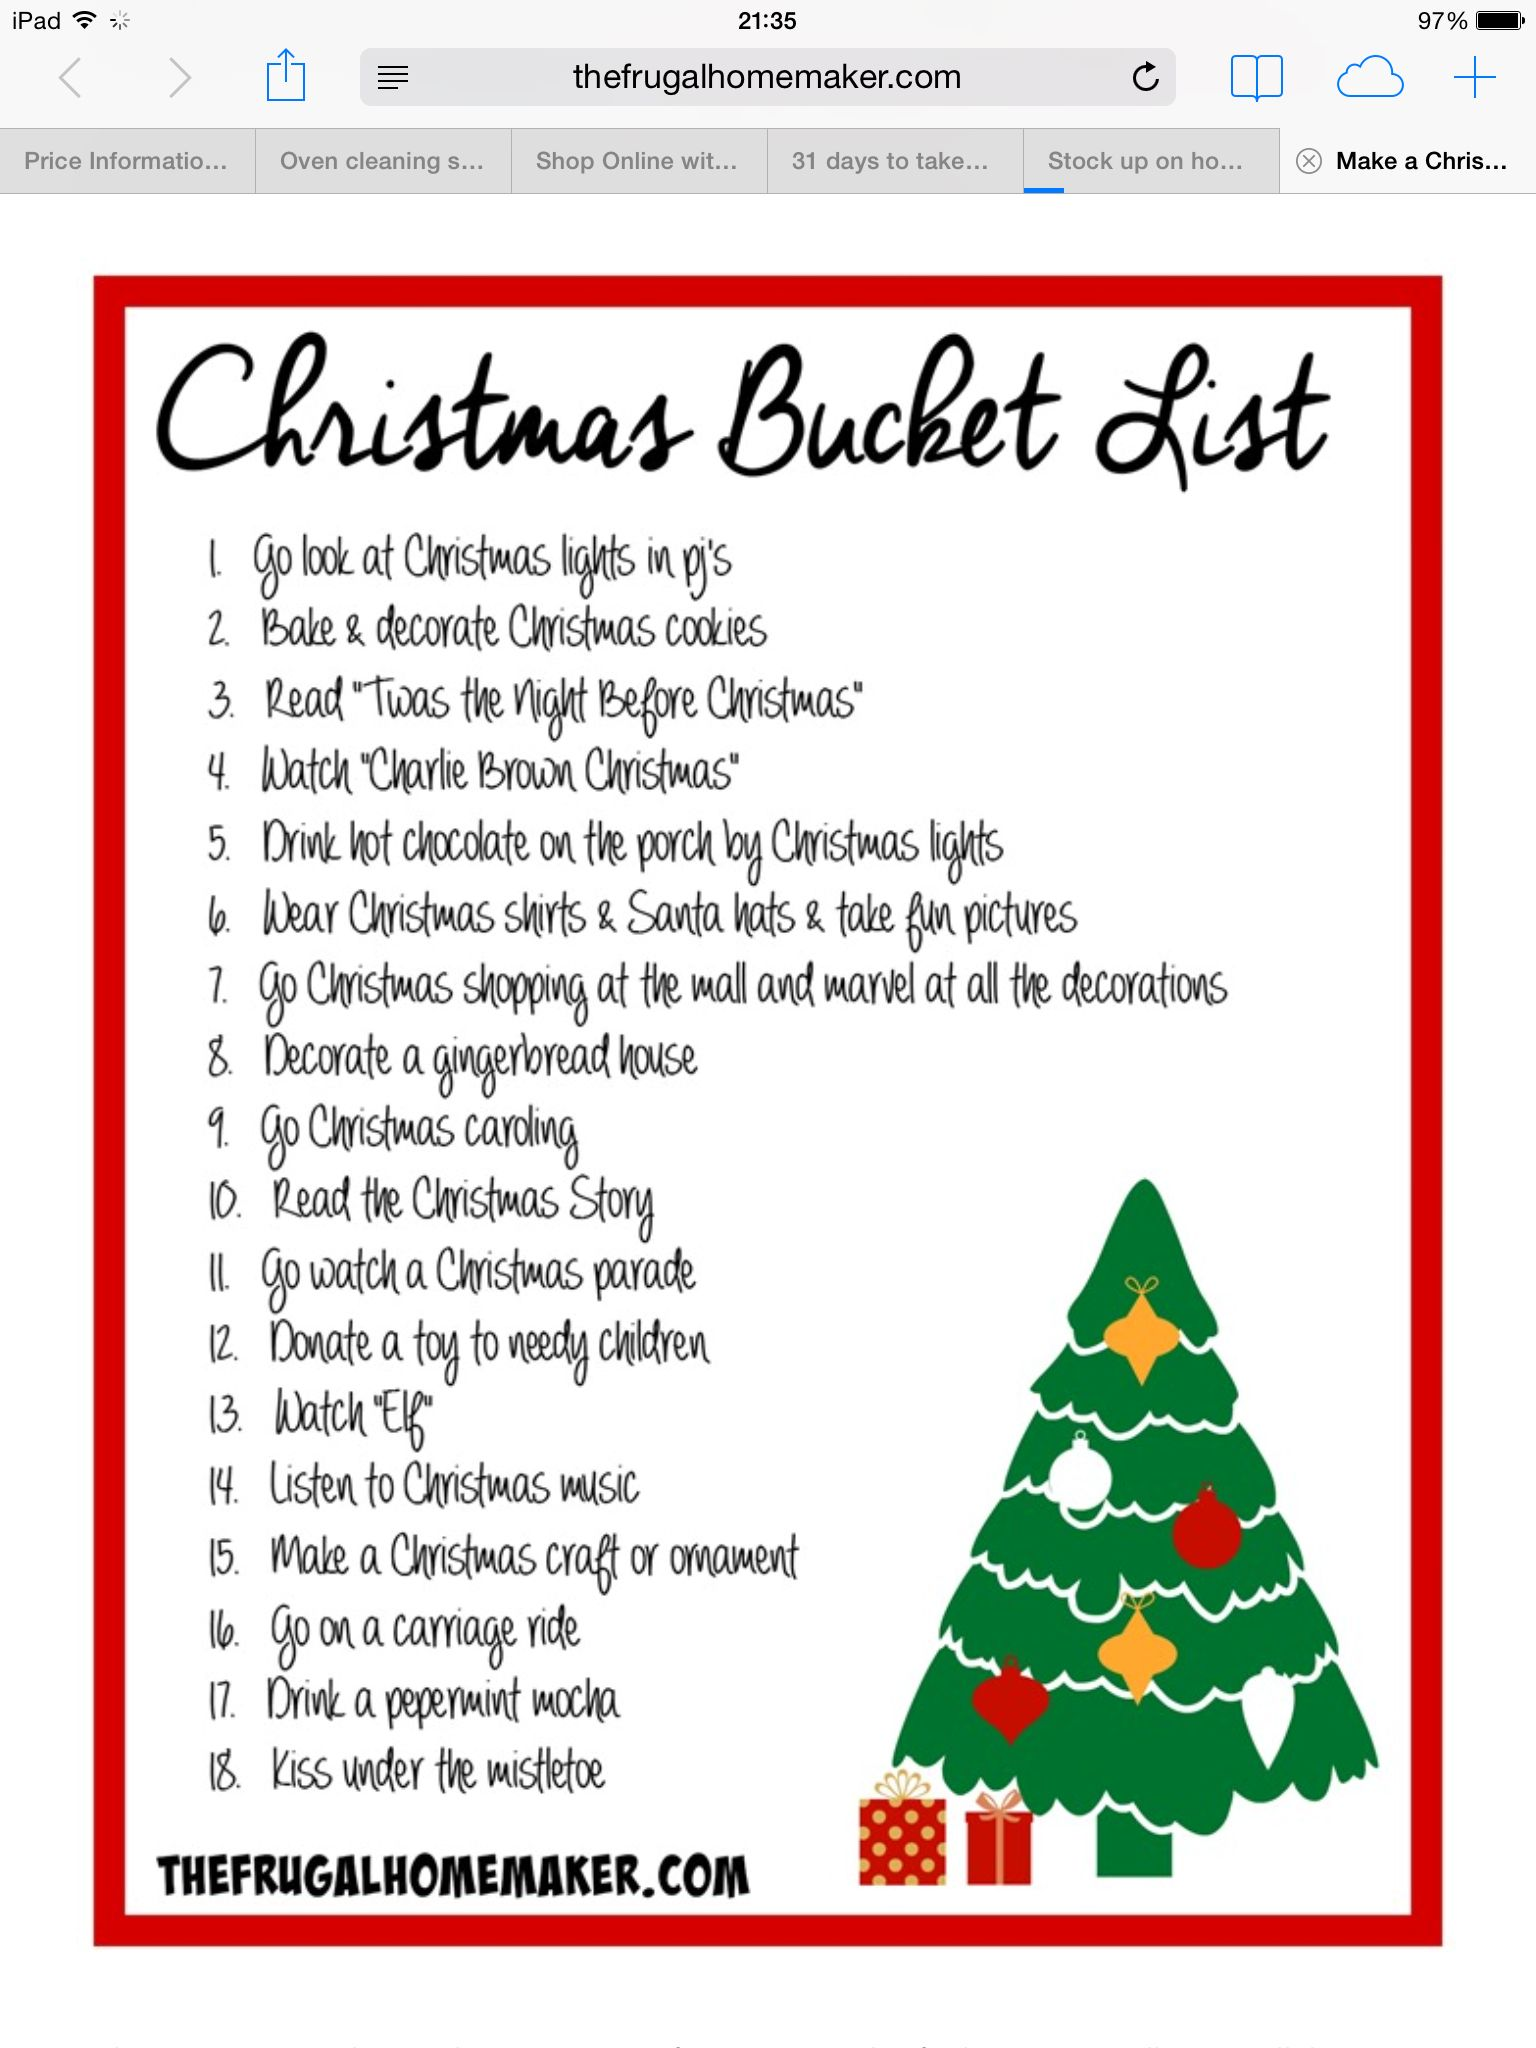 i need to make a christmas bucket list for this year christmas bucket list 2014 create memories not stress this christmas make a christmas bucket list - Christmas Lists 2014